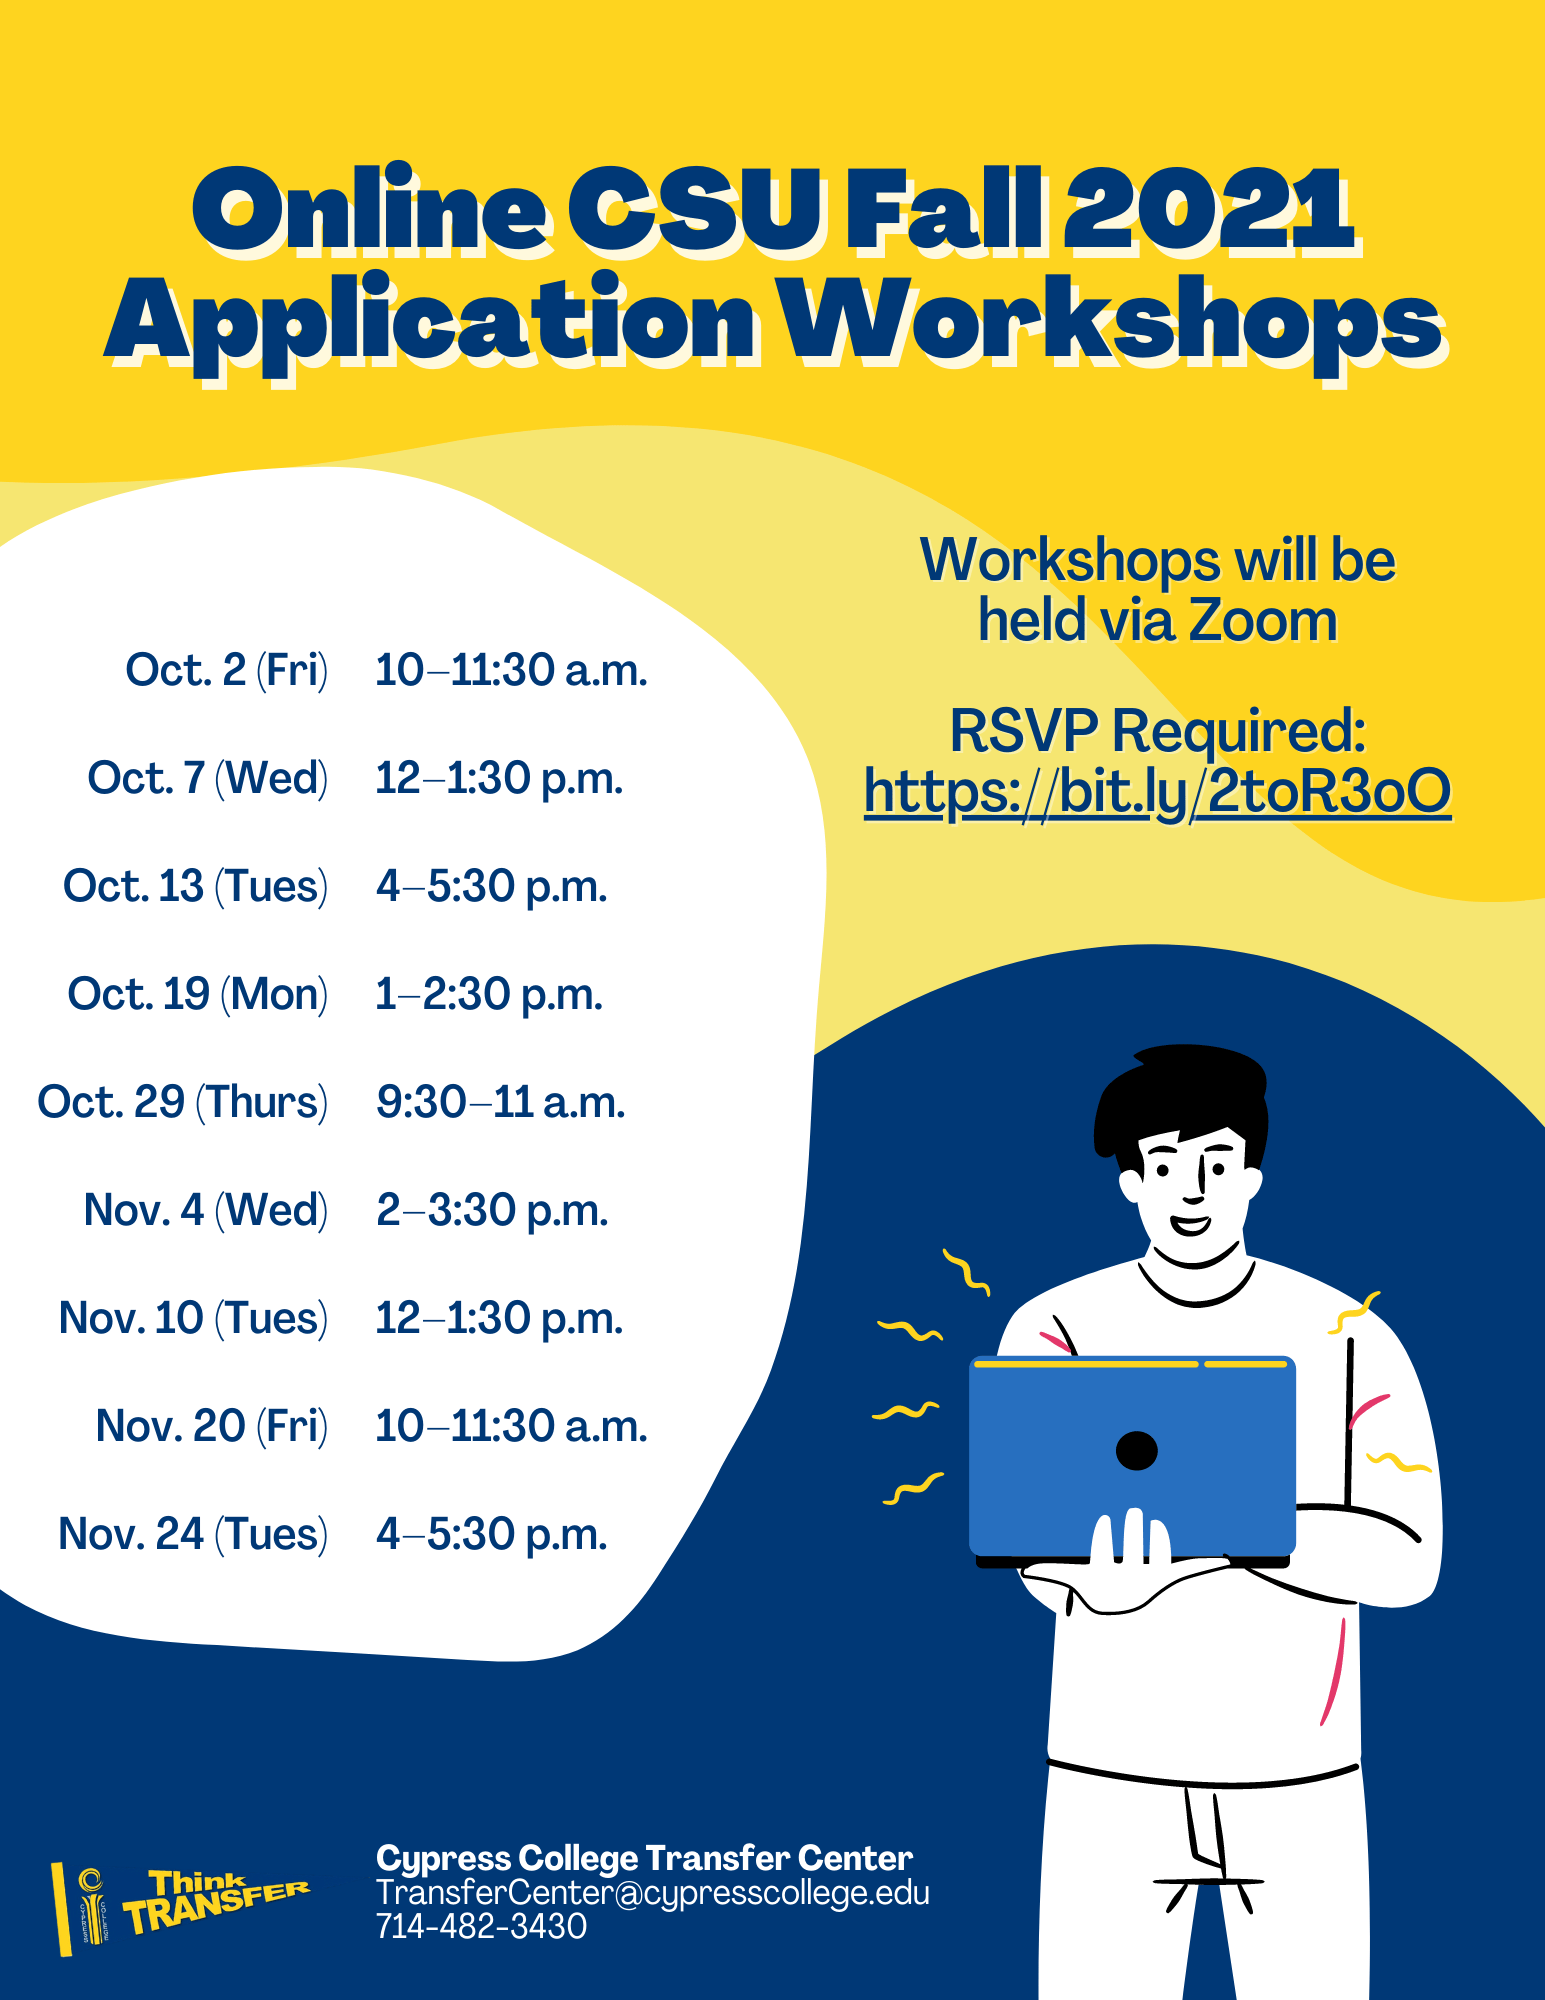 Online CSU Fall 2021 Application Workshops flyer